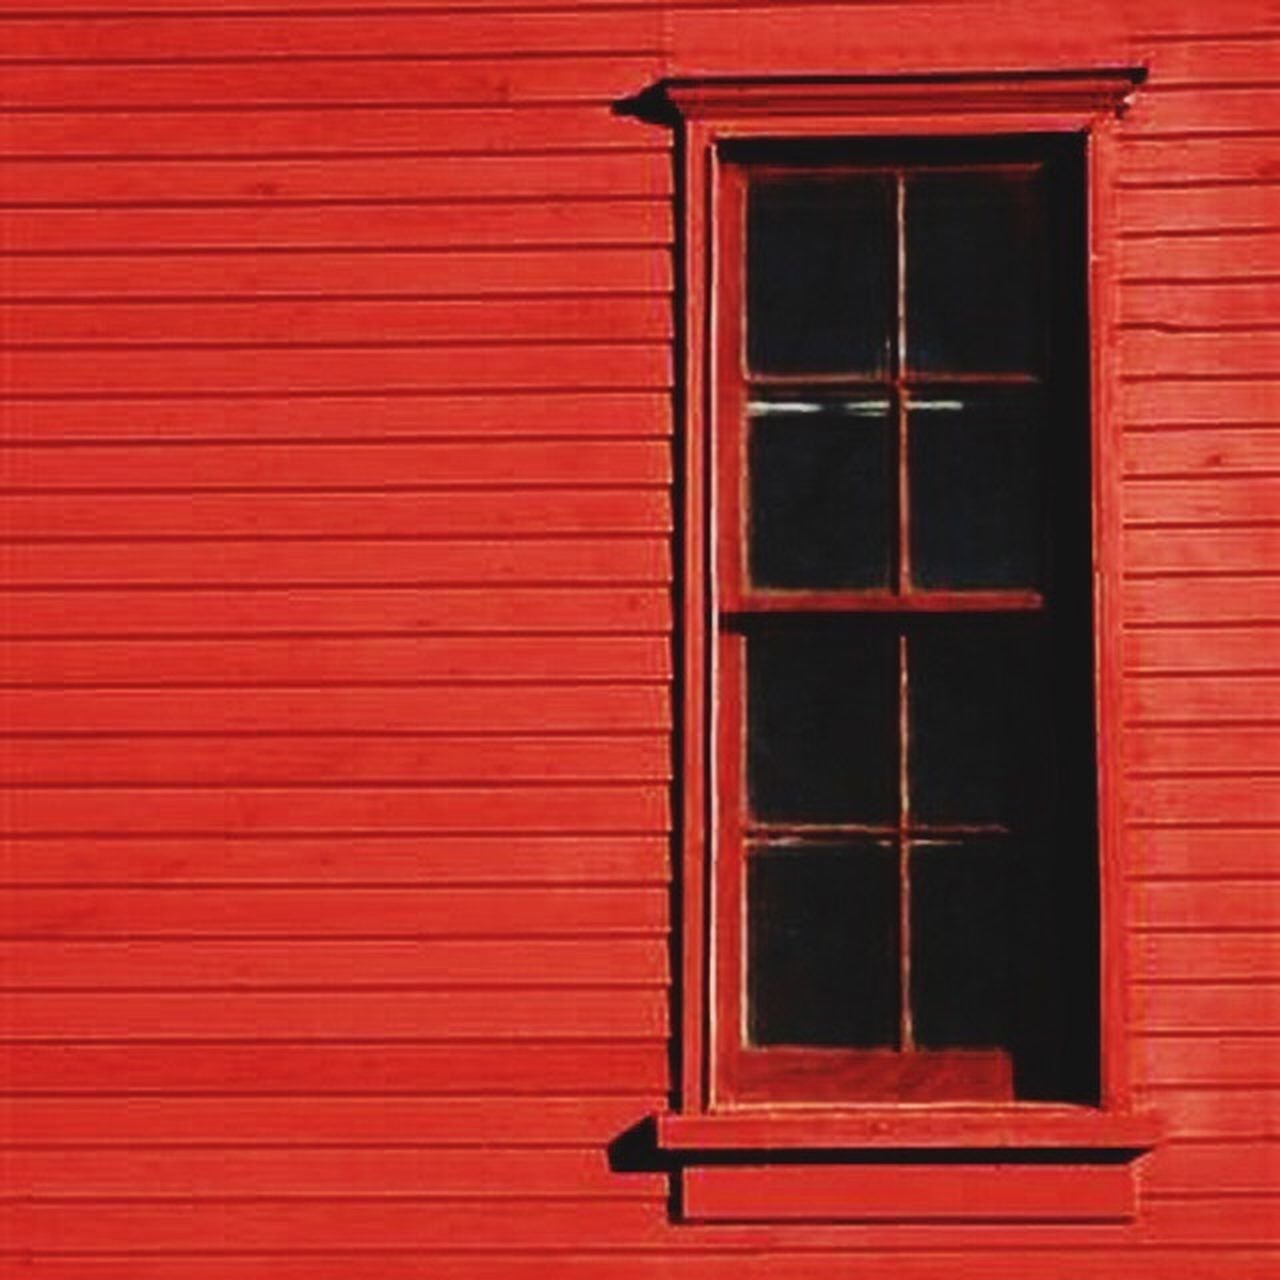 red, window, building exterior, outdoors, full frame, built structure, architecture, day, no people, shutter, backgrounds, close-up